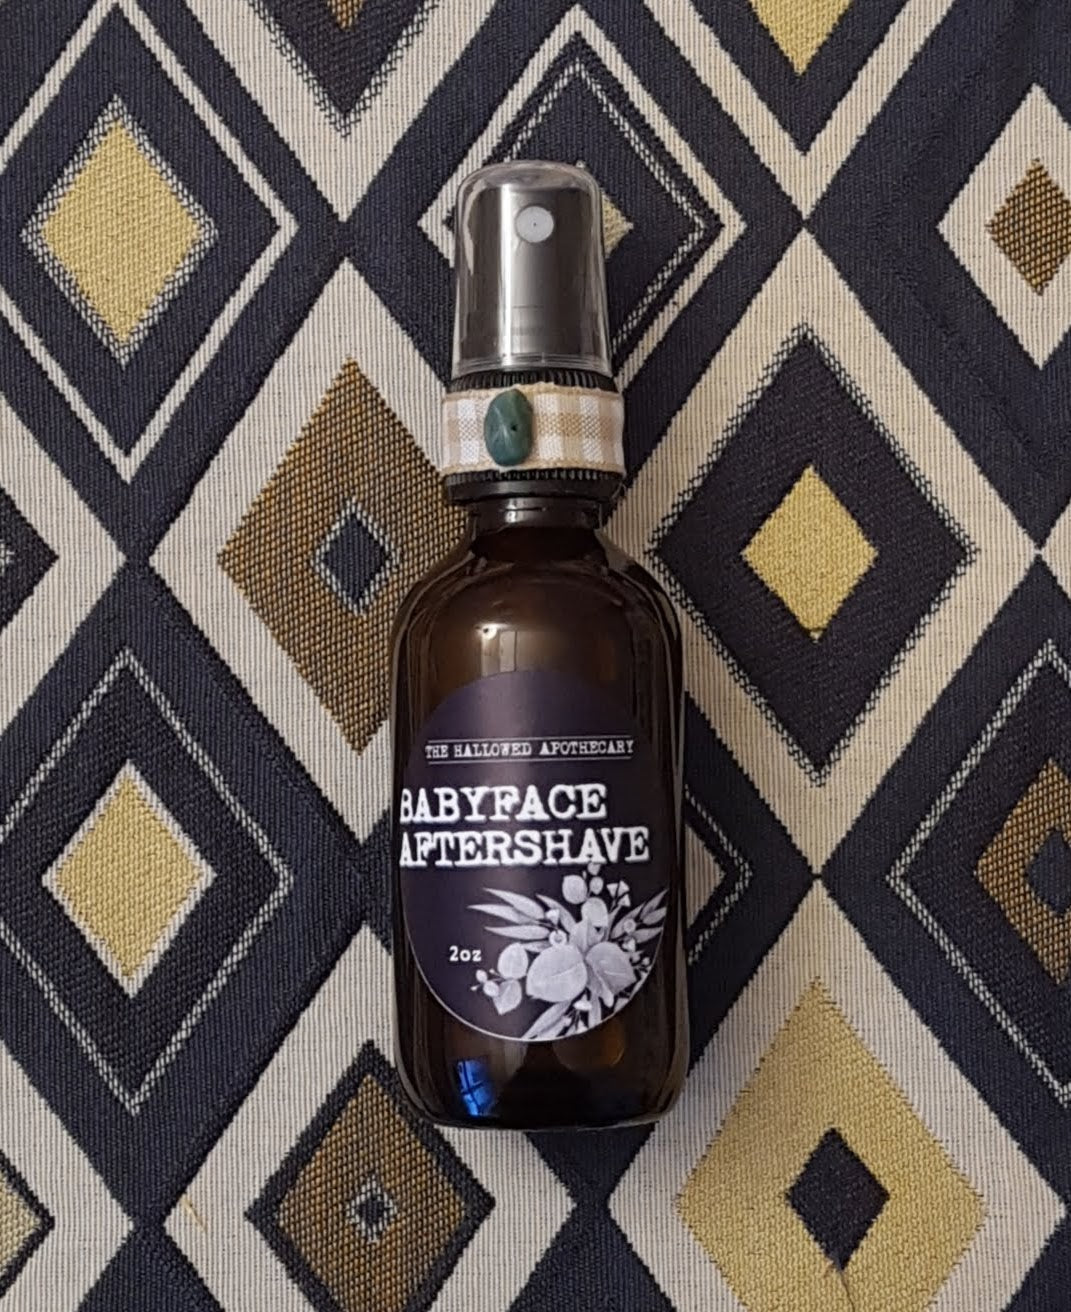 BabyFace Aftershave